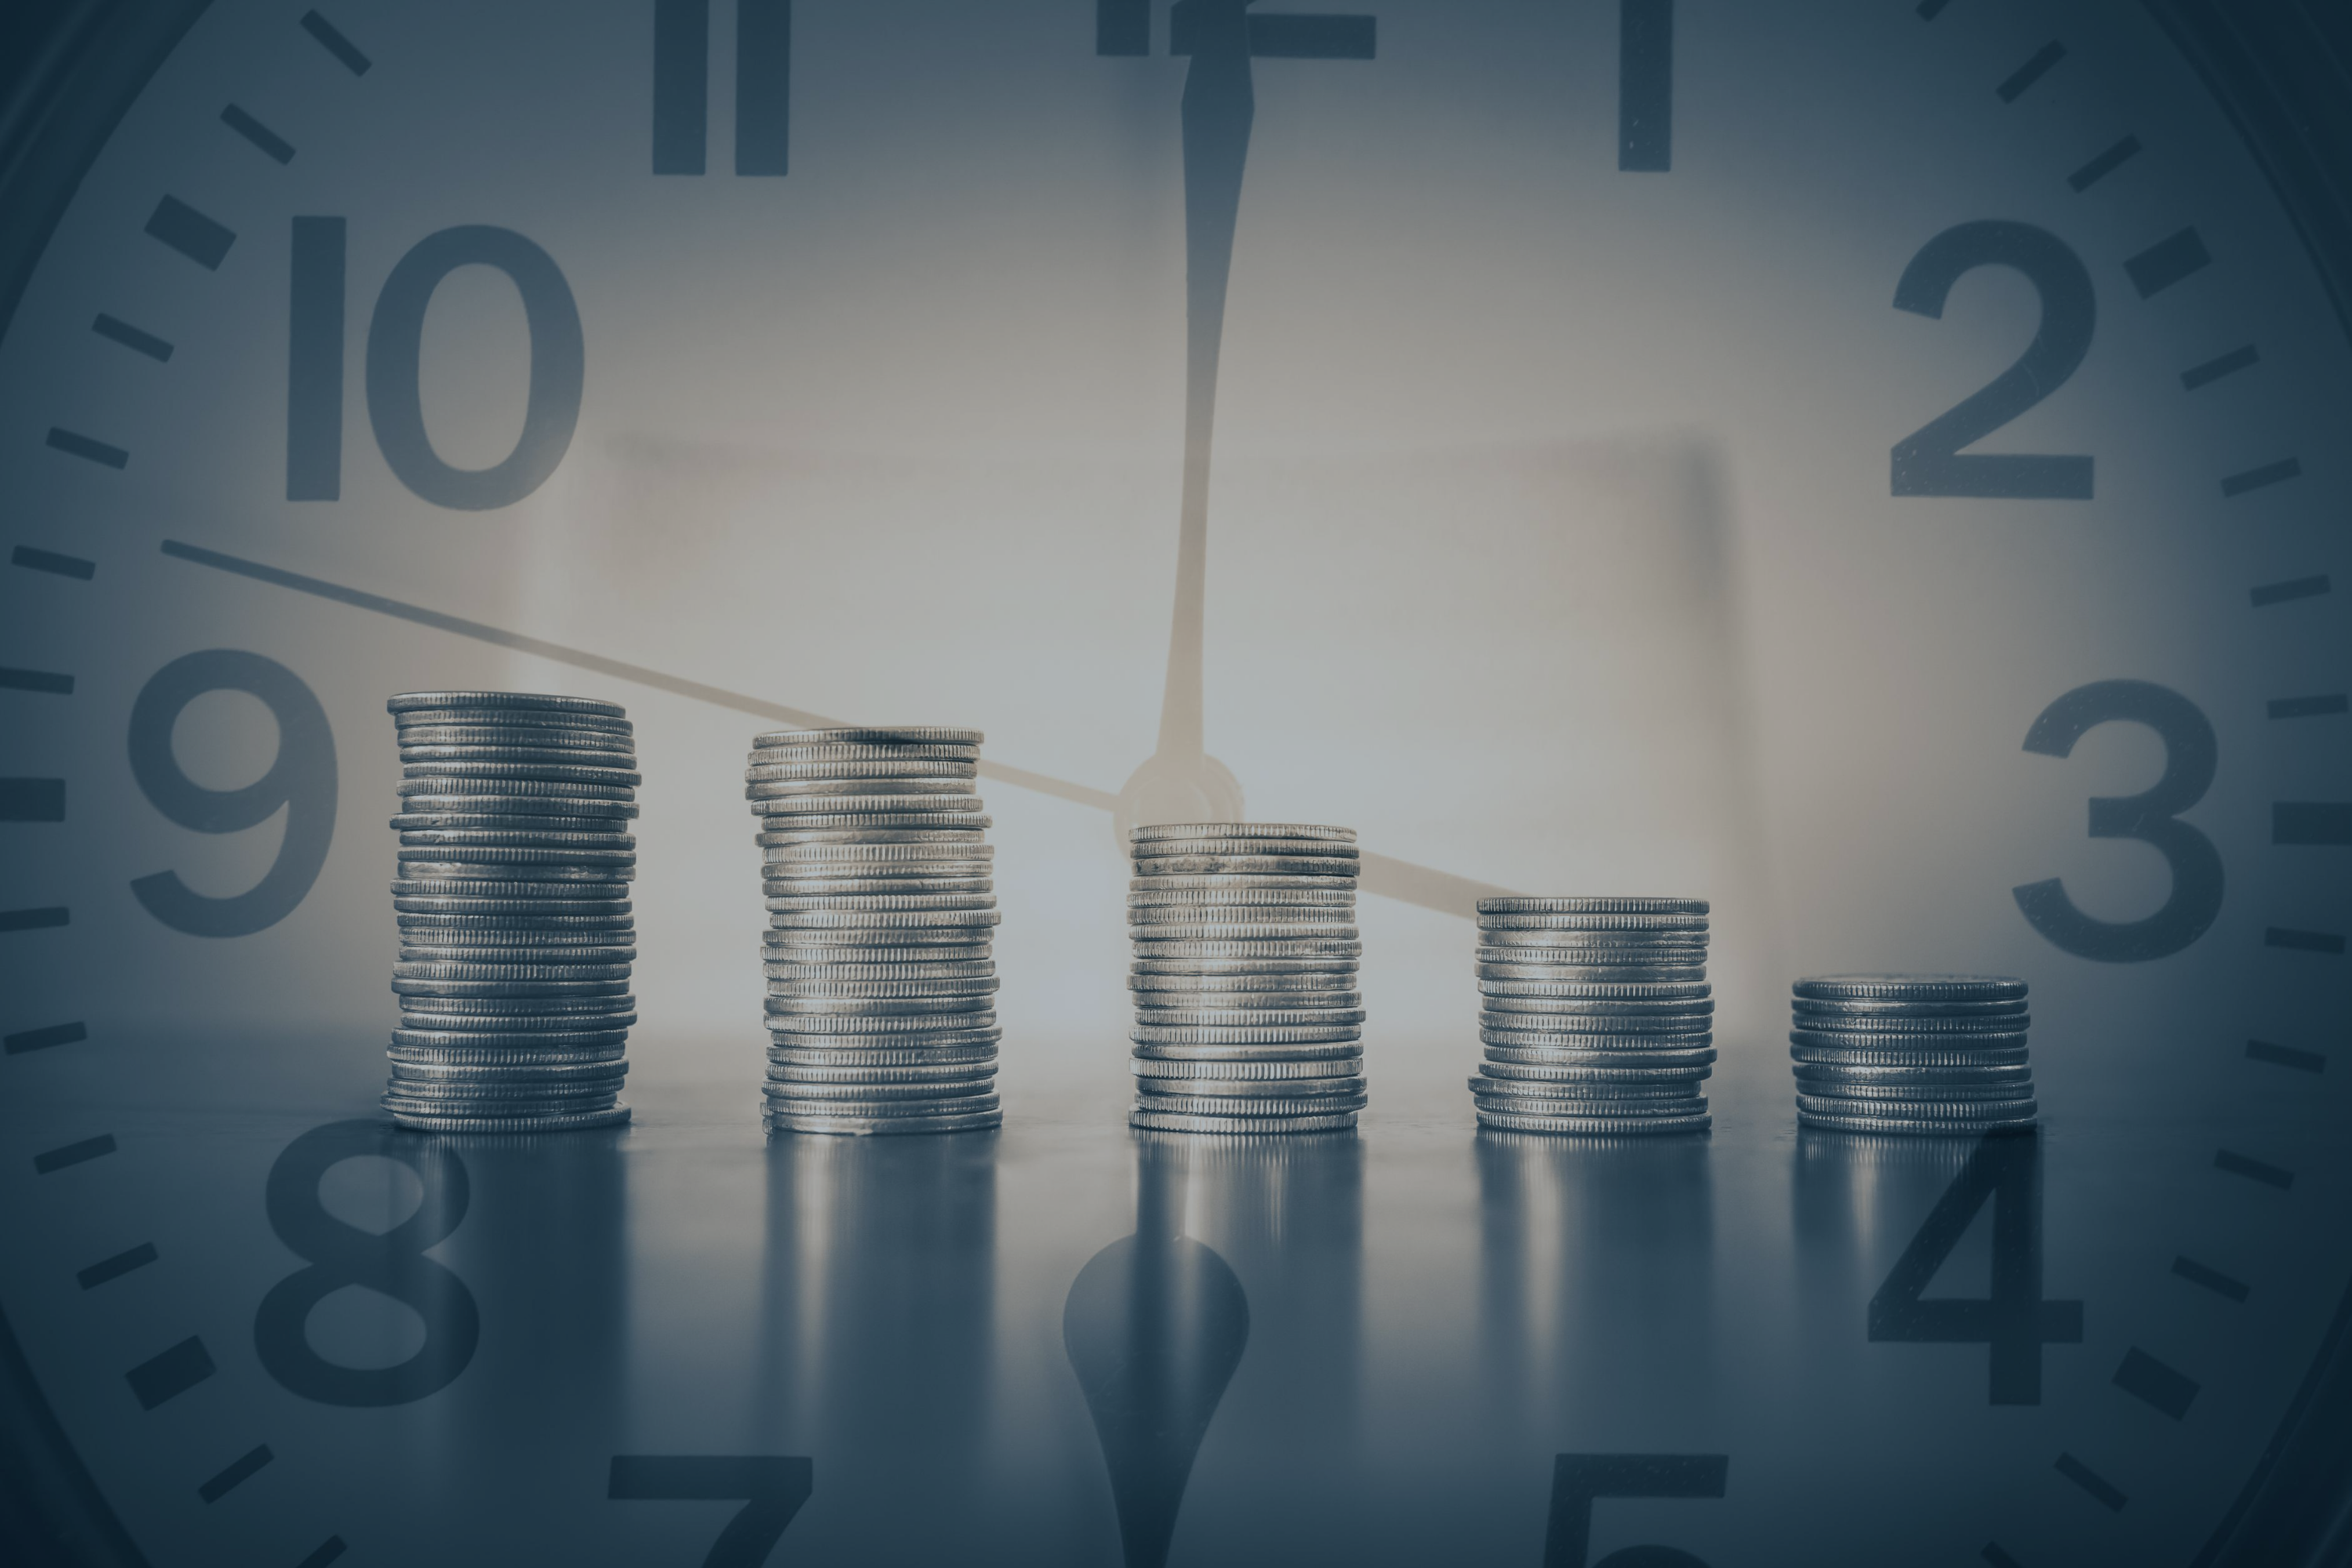 stacks_of_coins_in_front_of_a_clock_face_representing_time_and_cost